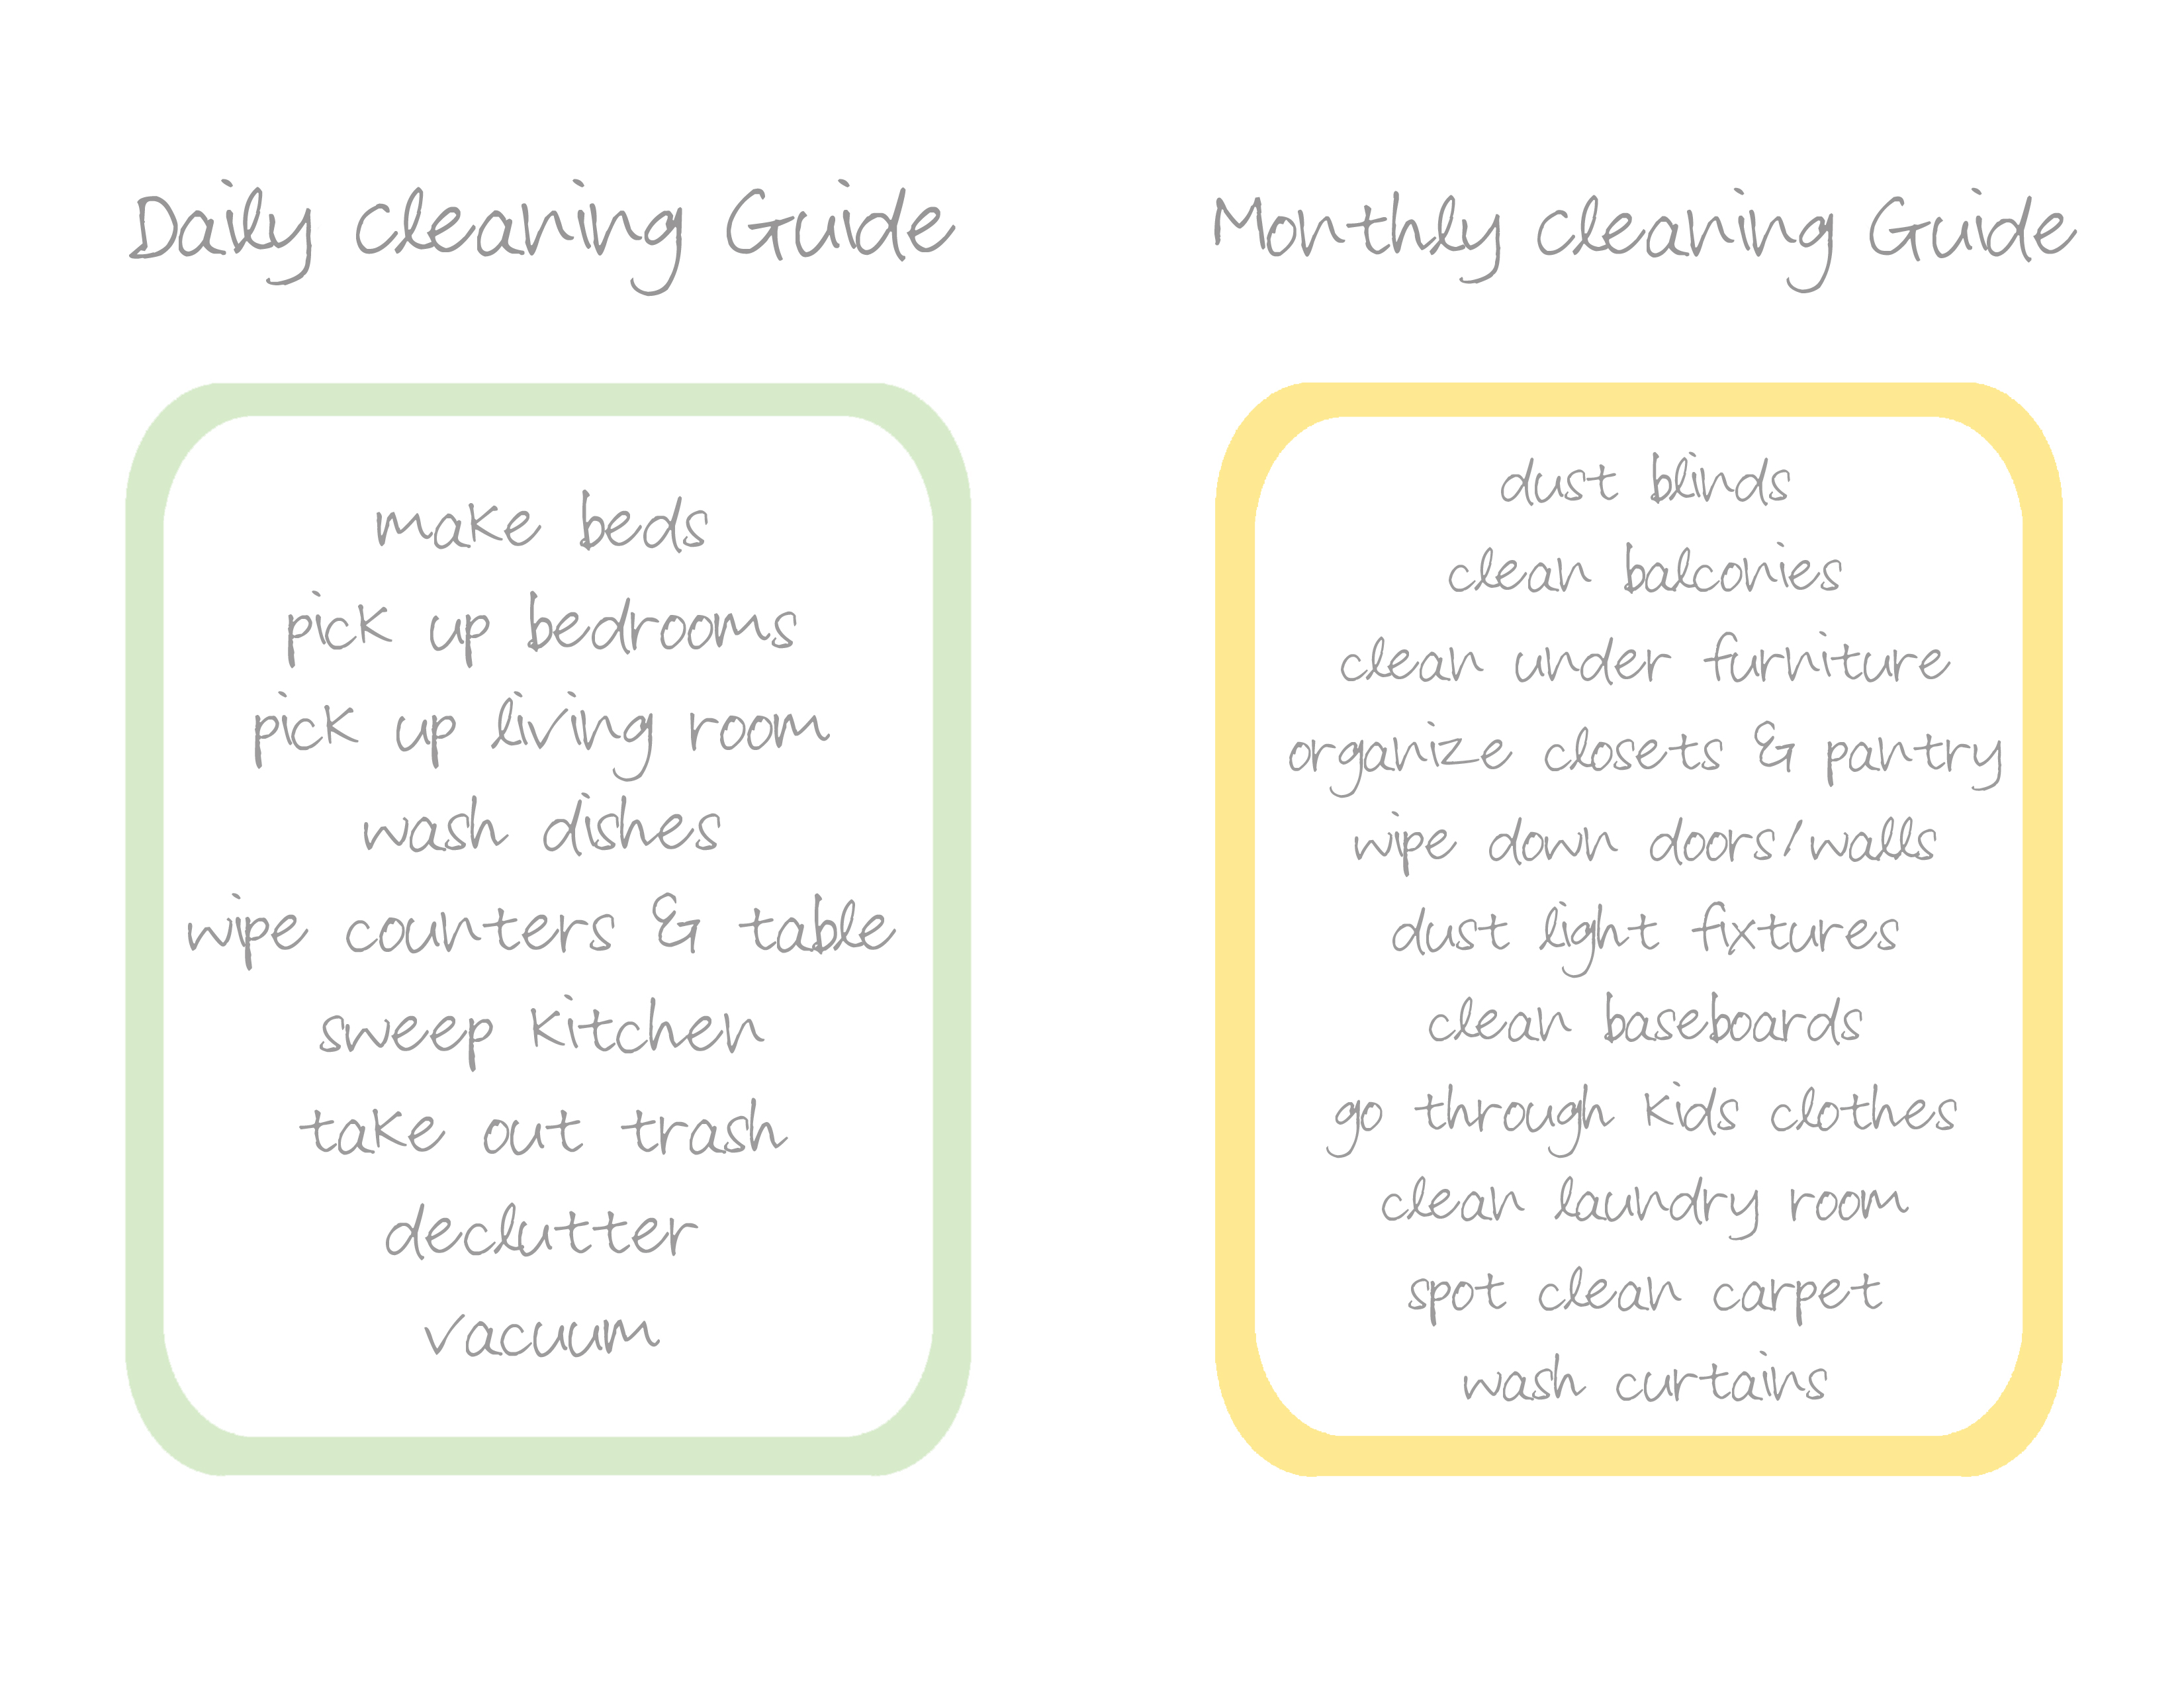 daily and monthly cleaning guide